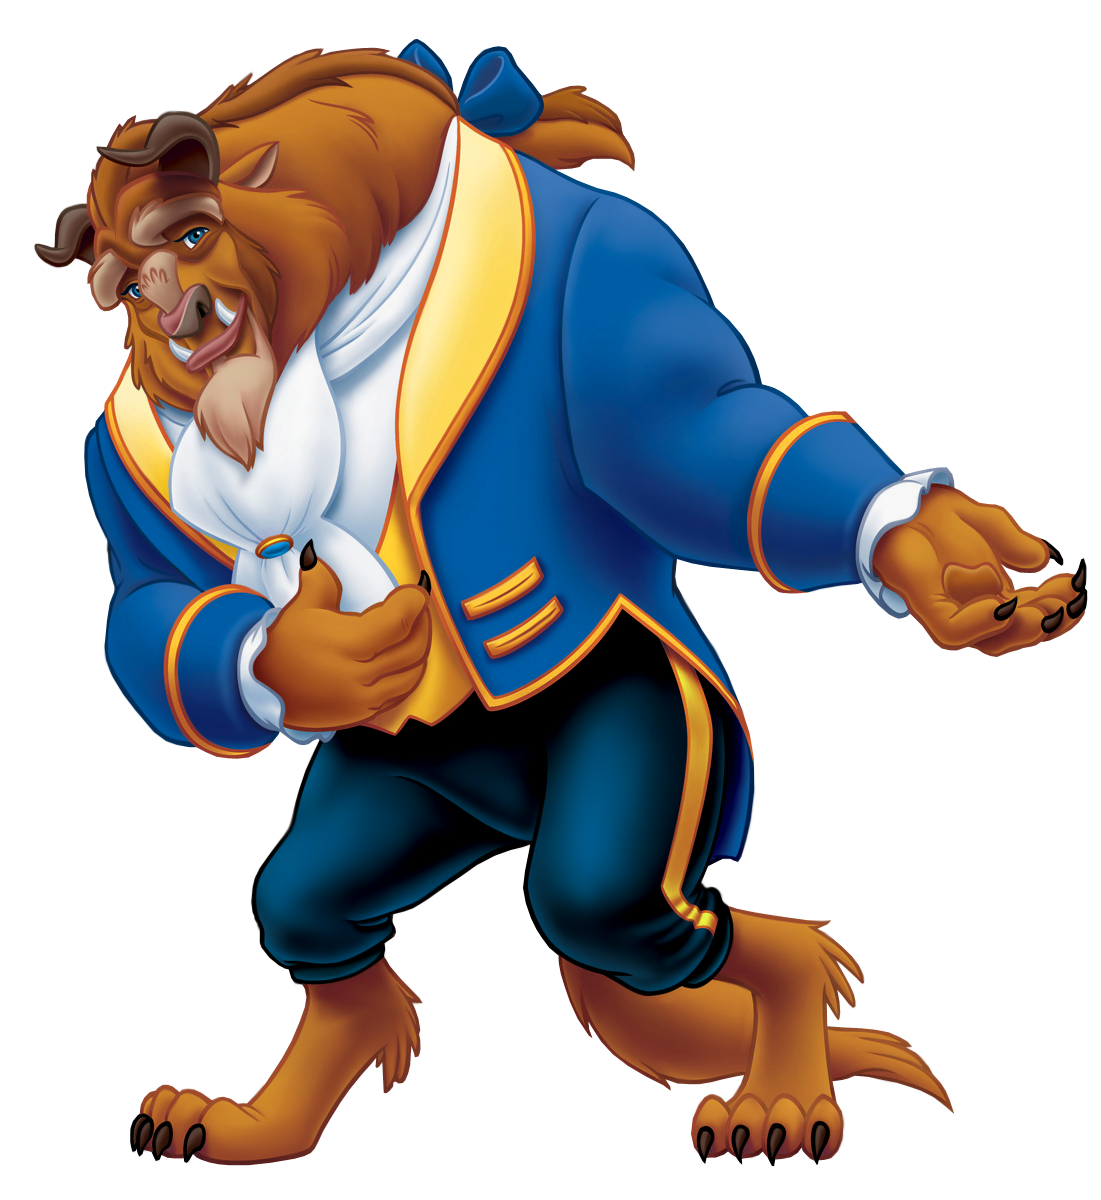 And Beauty Belle Beast The Princess Disney PNG Image